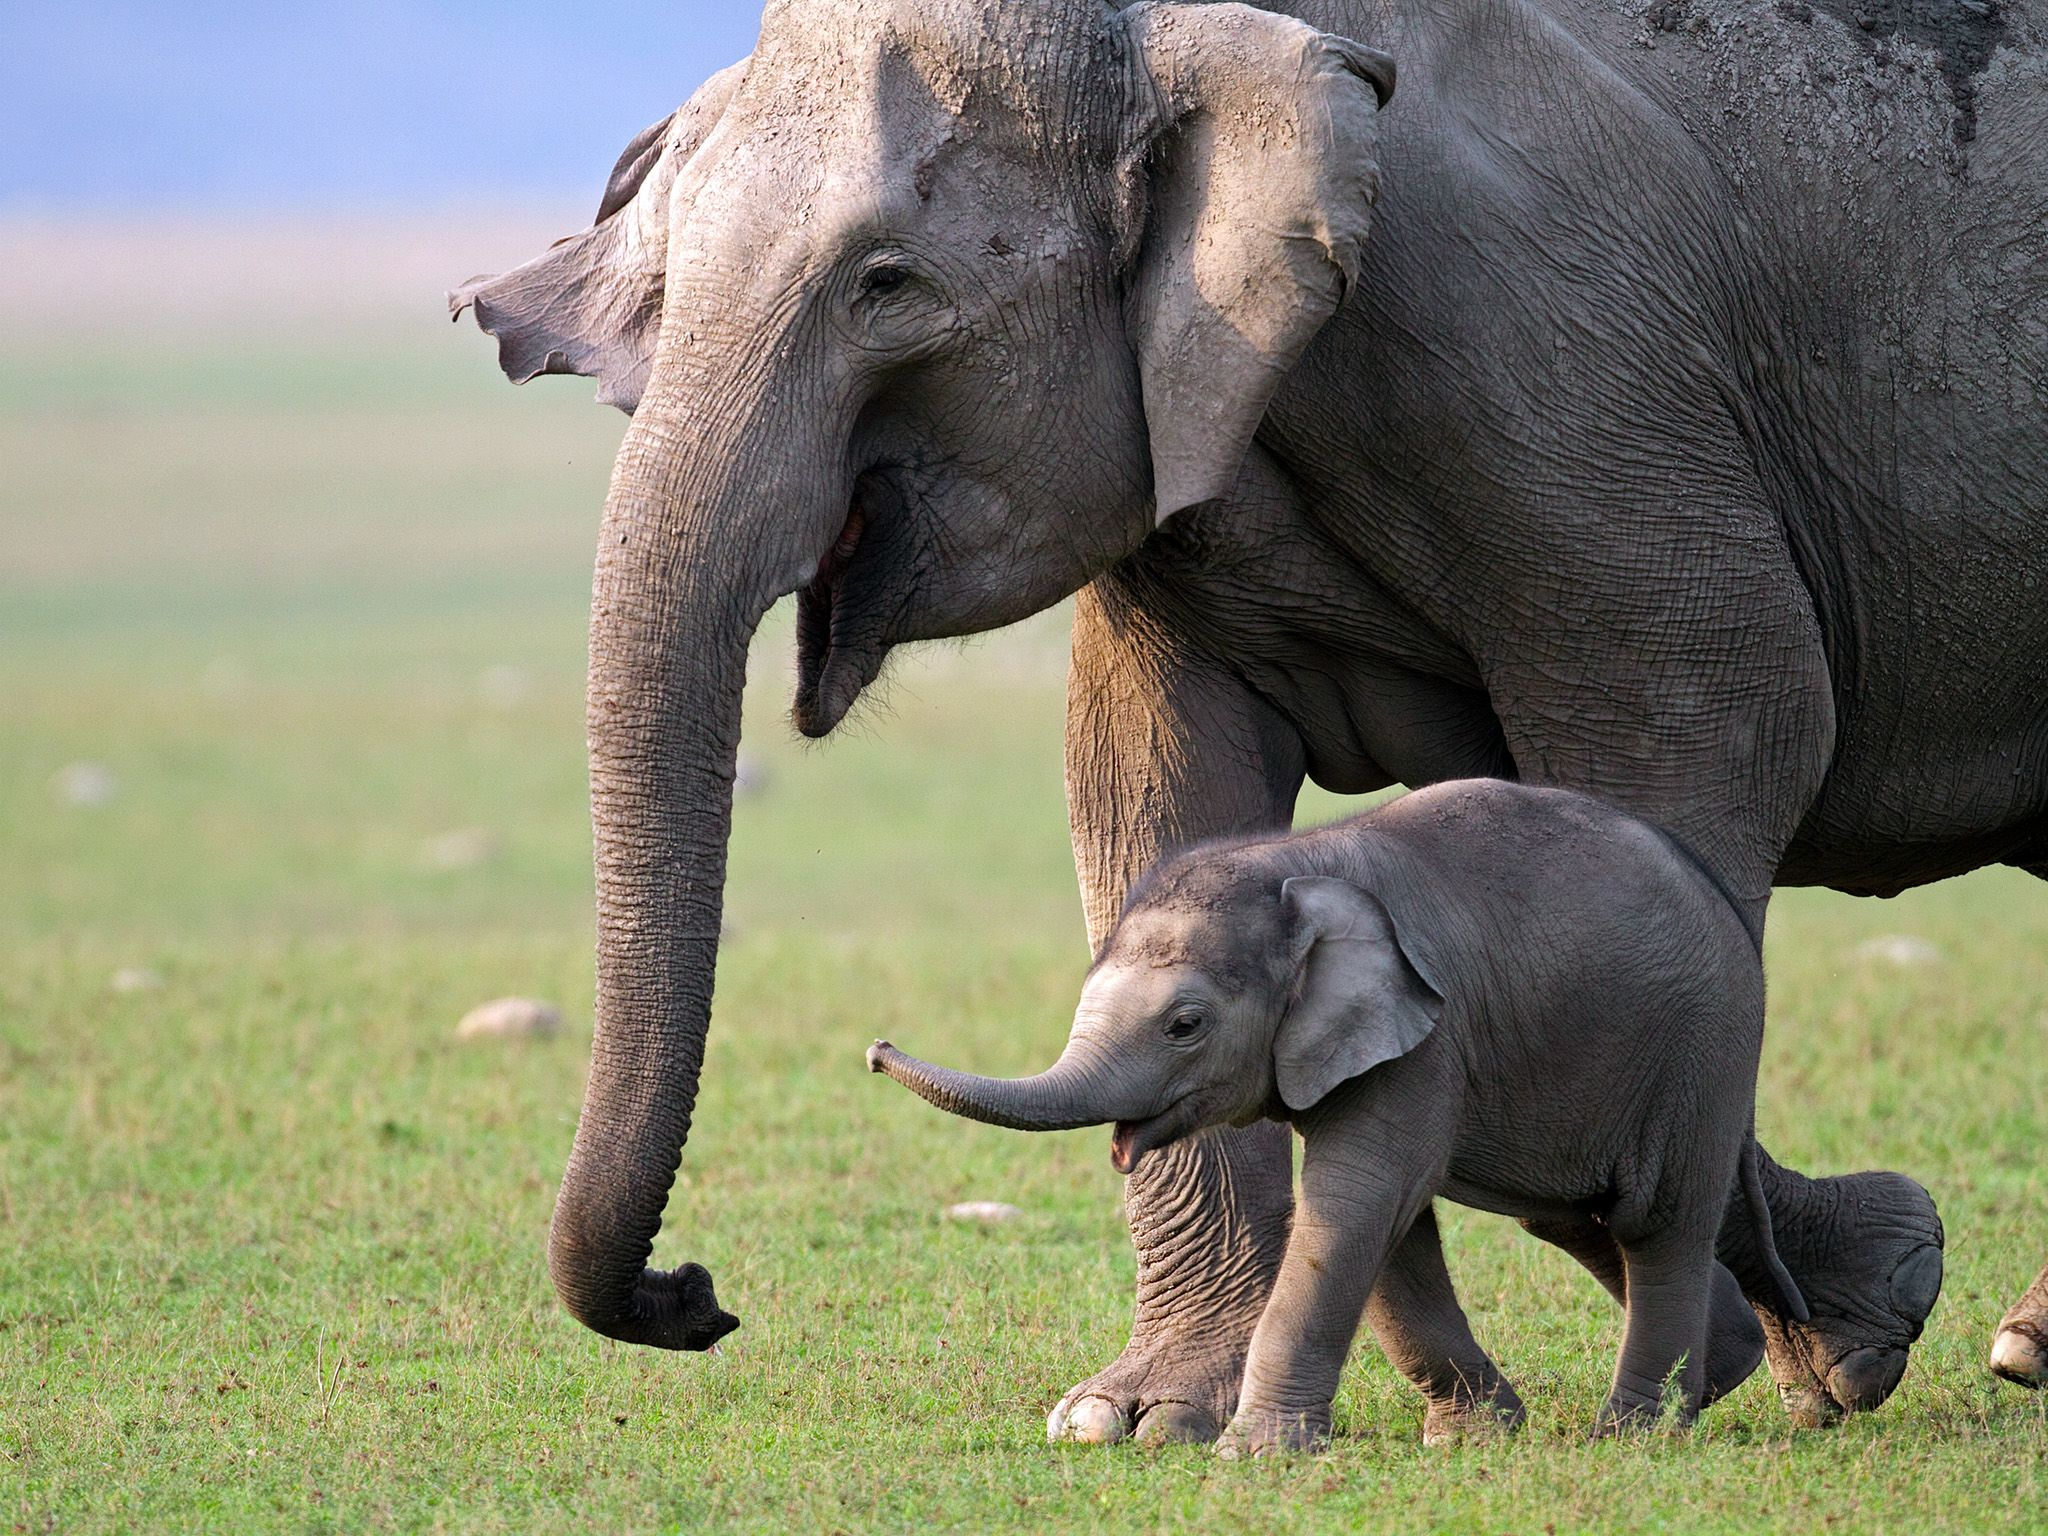 Elephants have complex systems of communication, which can be life-saving when a baby is in distr... [Photo of the day - May 2015]